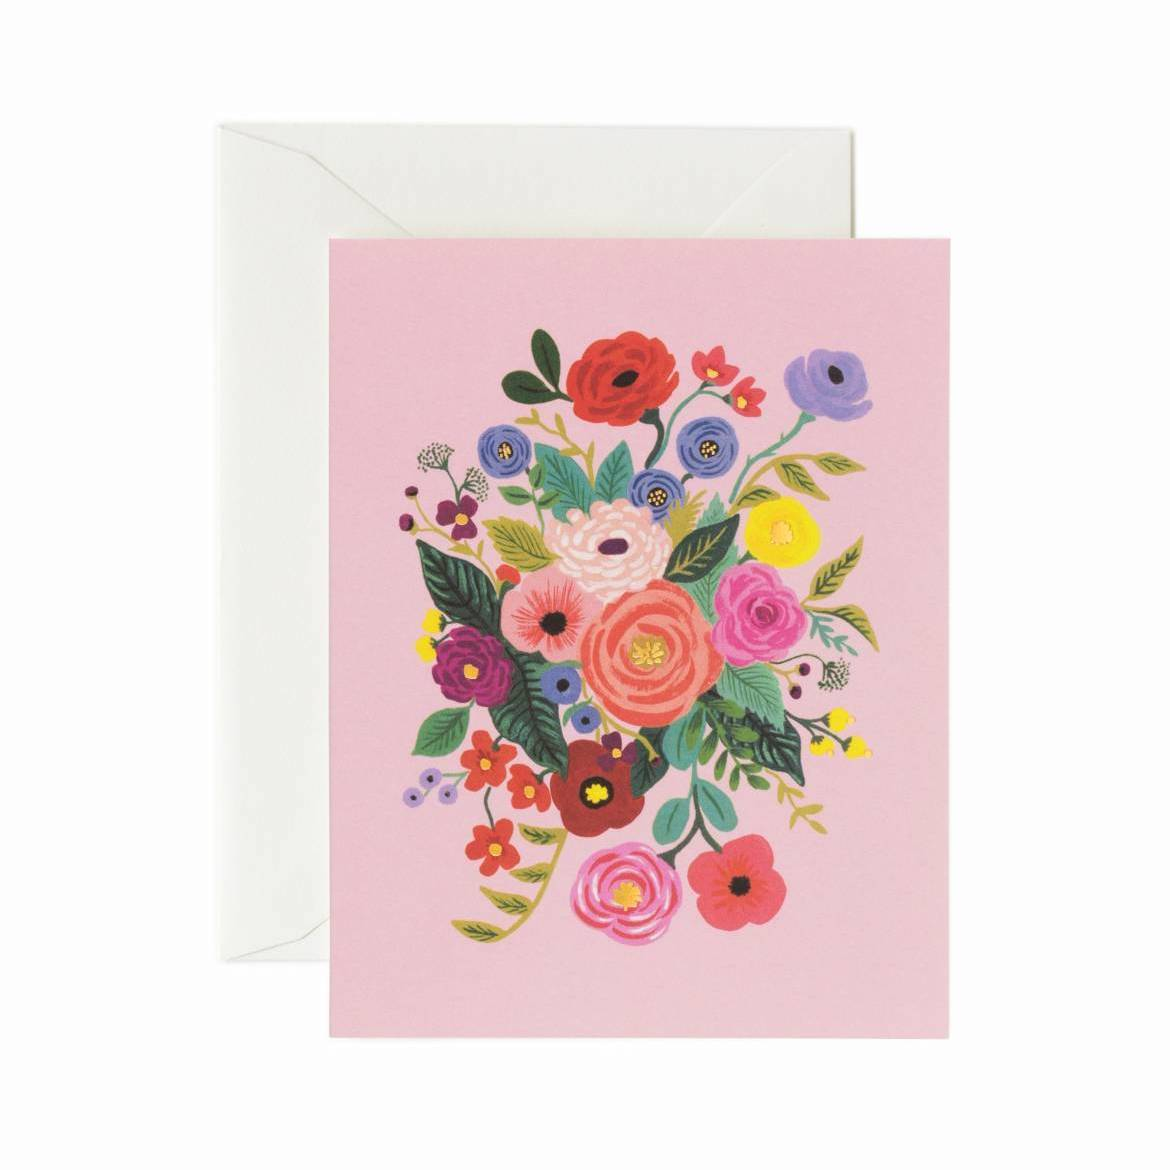 Garden Party Card Set - Rose Card - Rifle Paper Co.